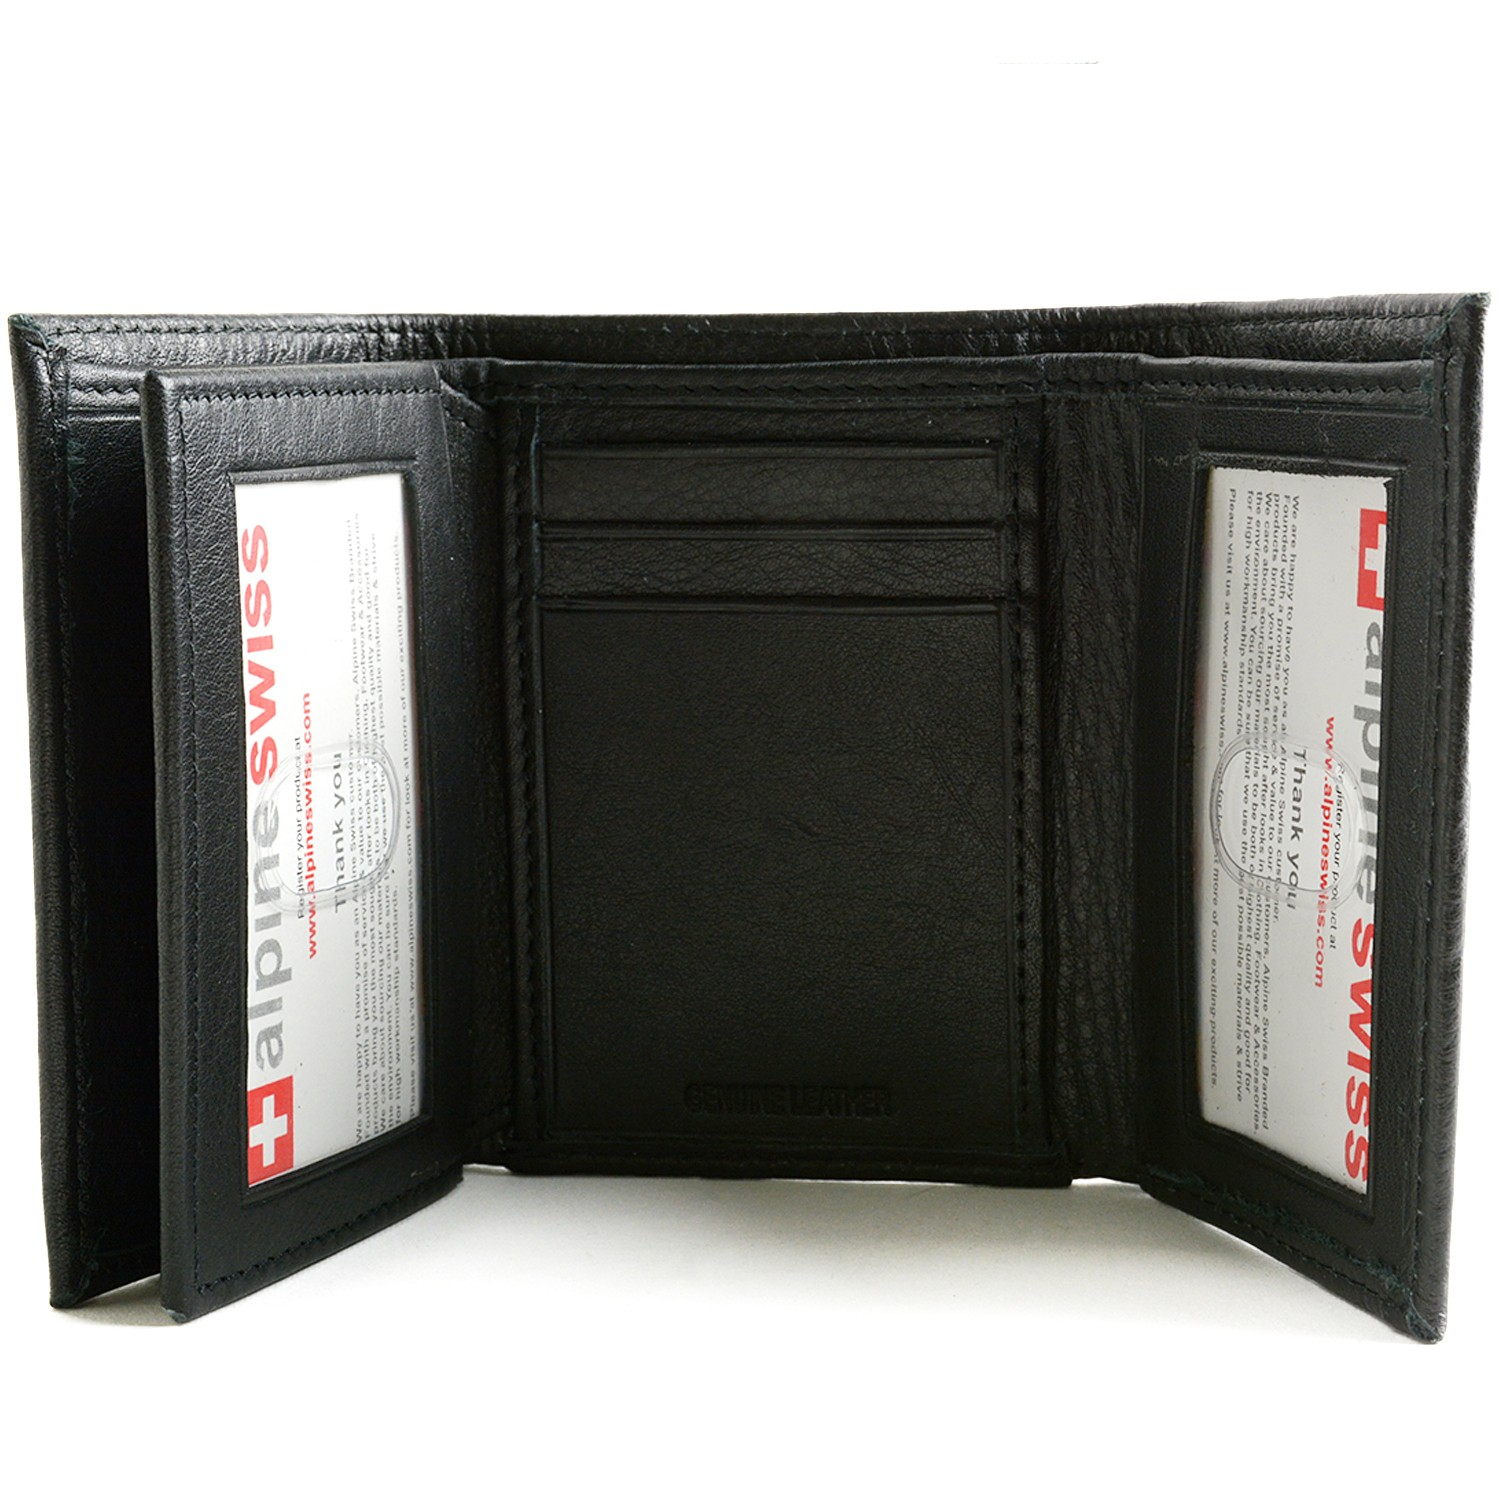 Id slot wallet